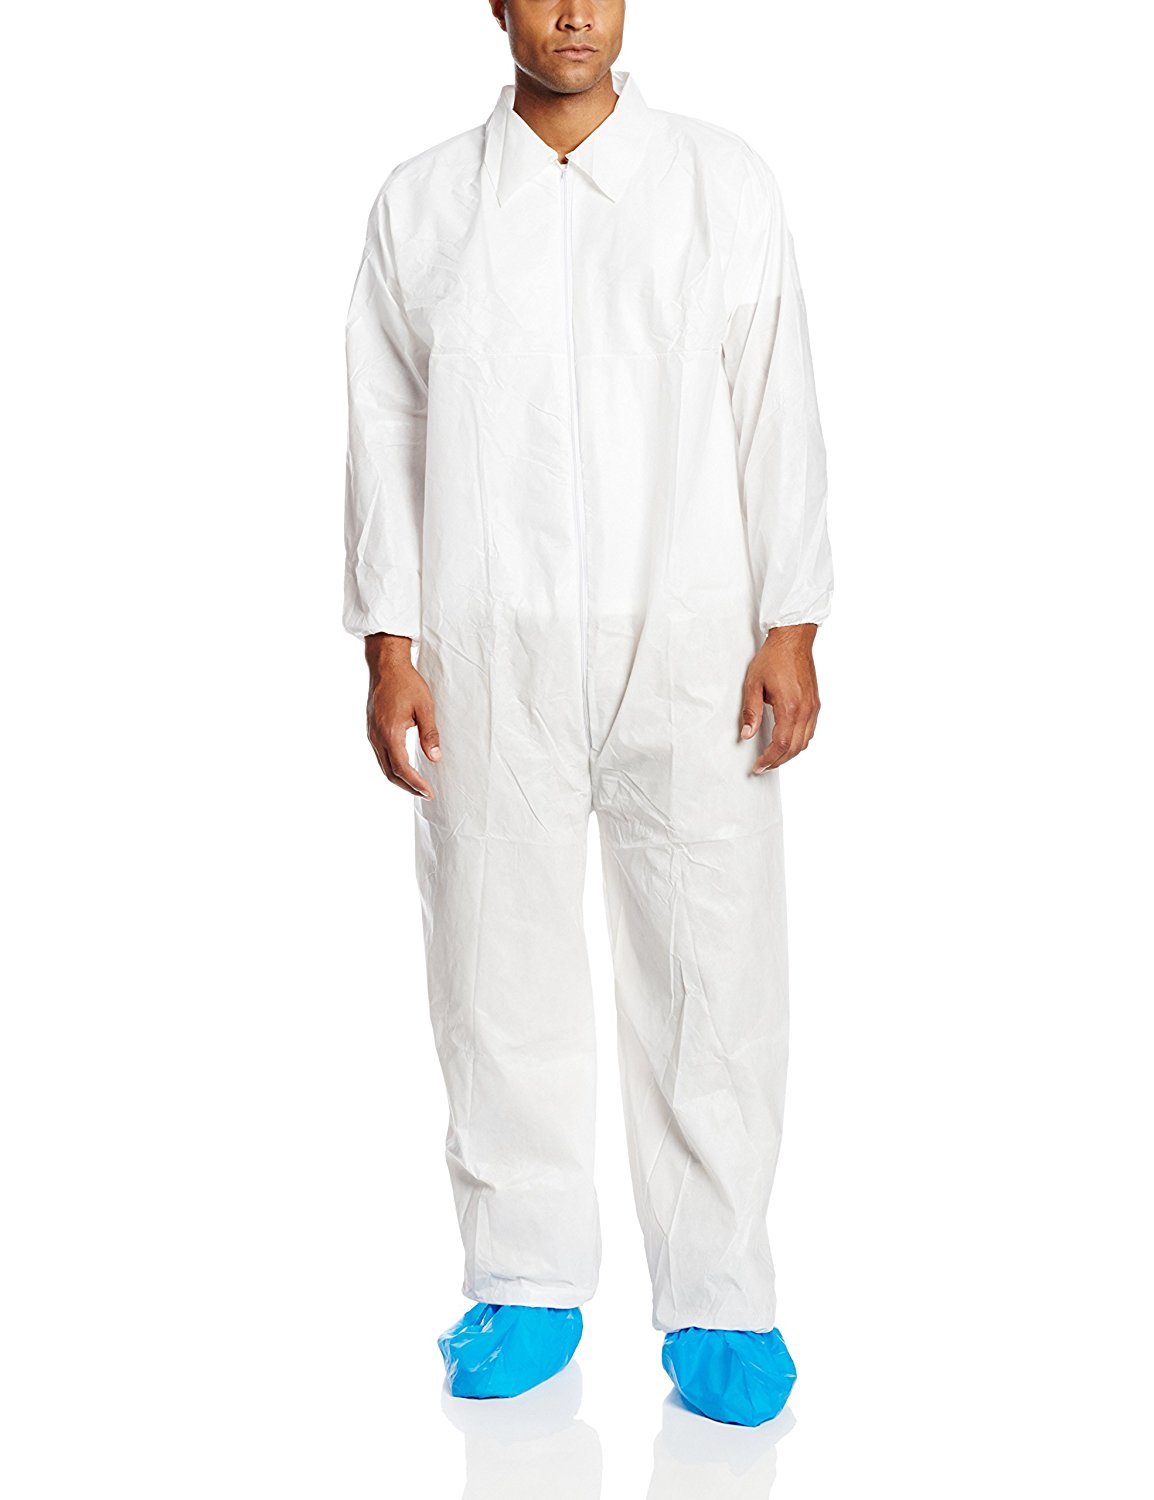 Protective Suit Size 2XL 25 Count Kimberly-Clark KLEENGUARD A35  Coverall 38950